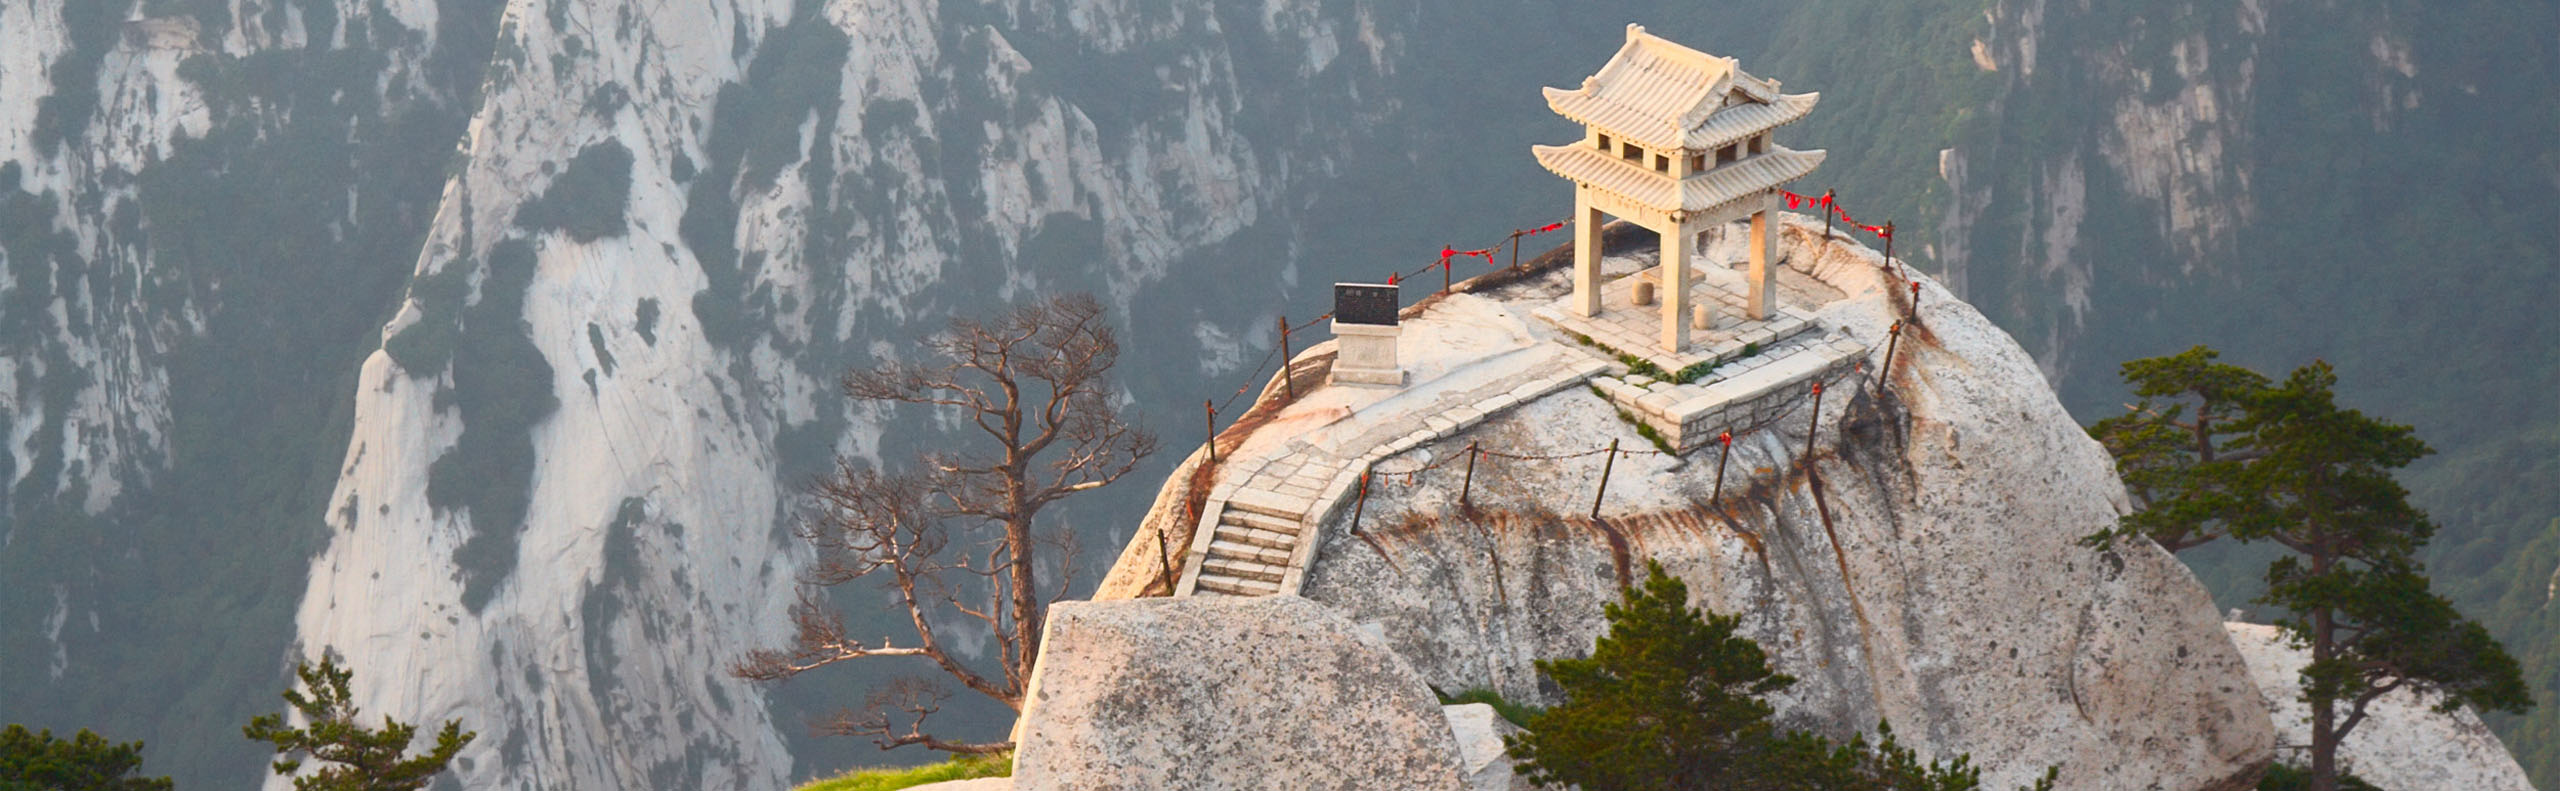 4 Days Mt Hua, Terracotta Warriors Museum, and Big Wild Goose Pagoda Tour